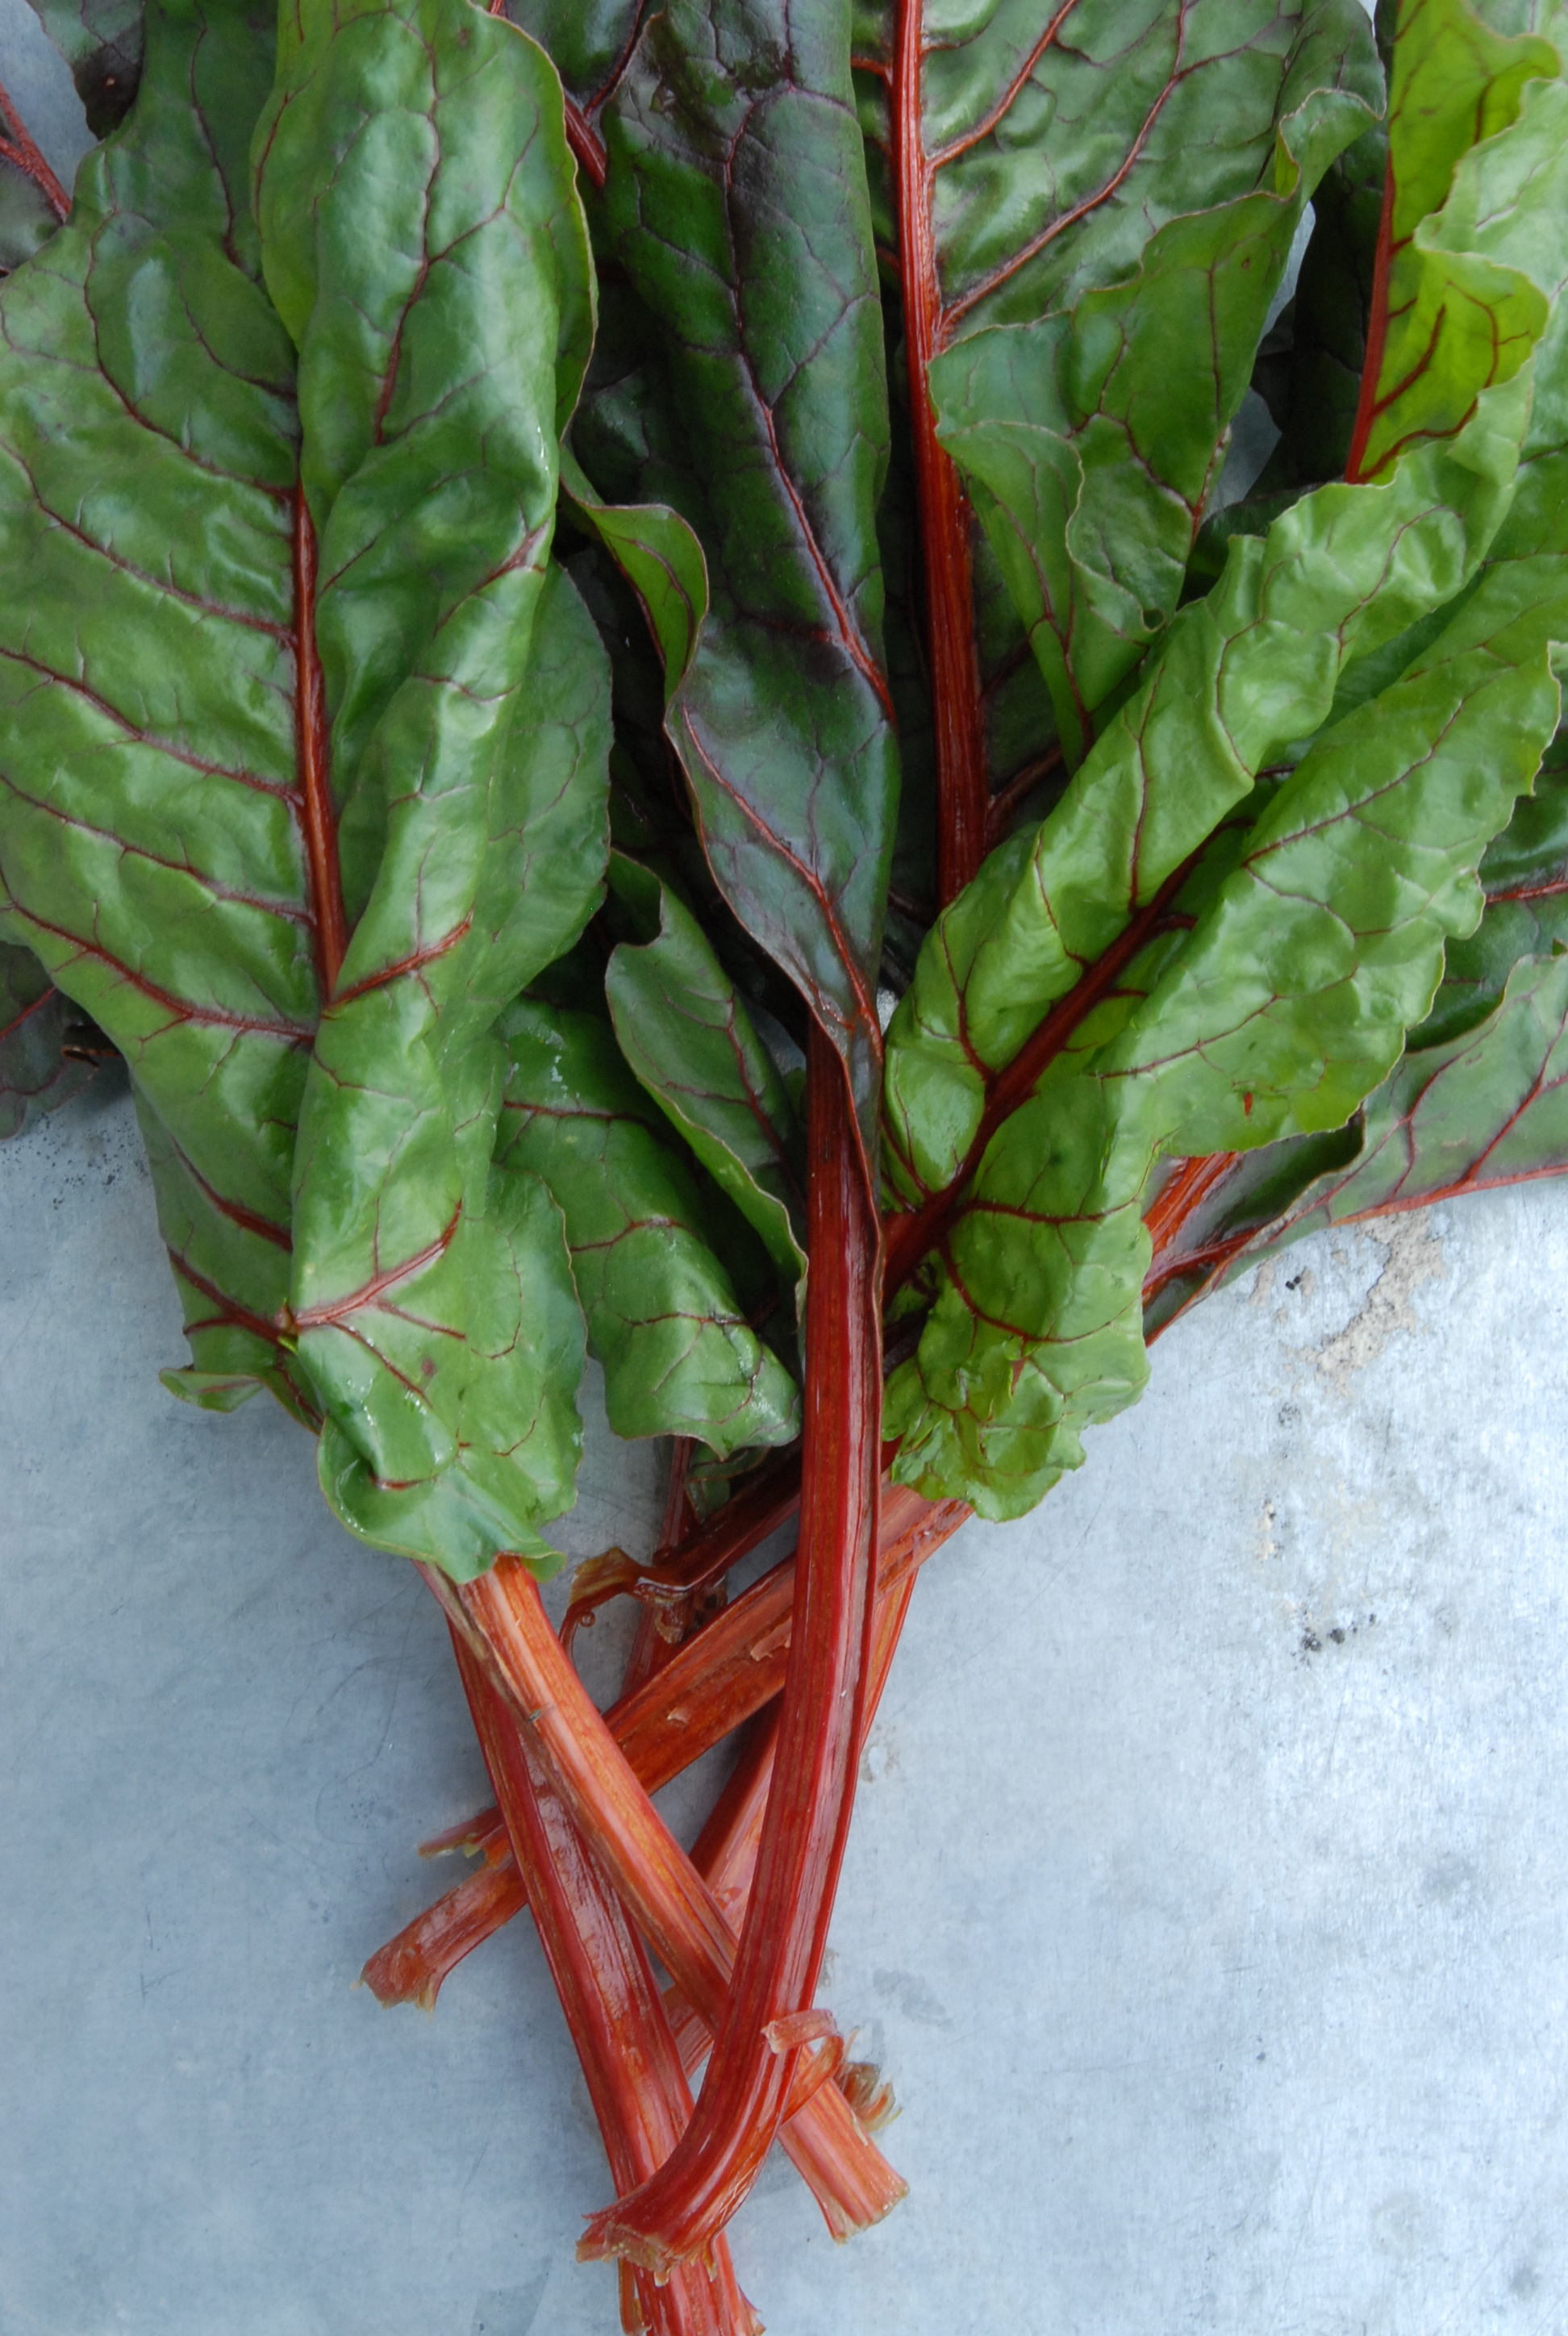 Chard in March from Mananica Farm